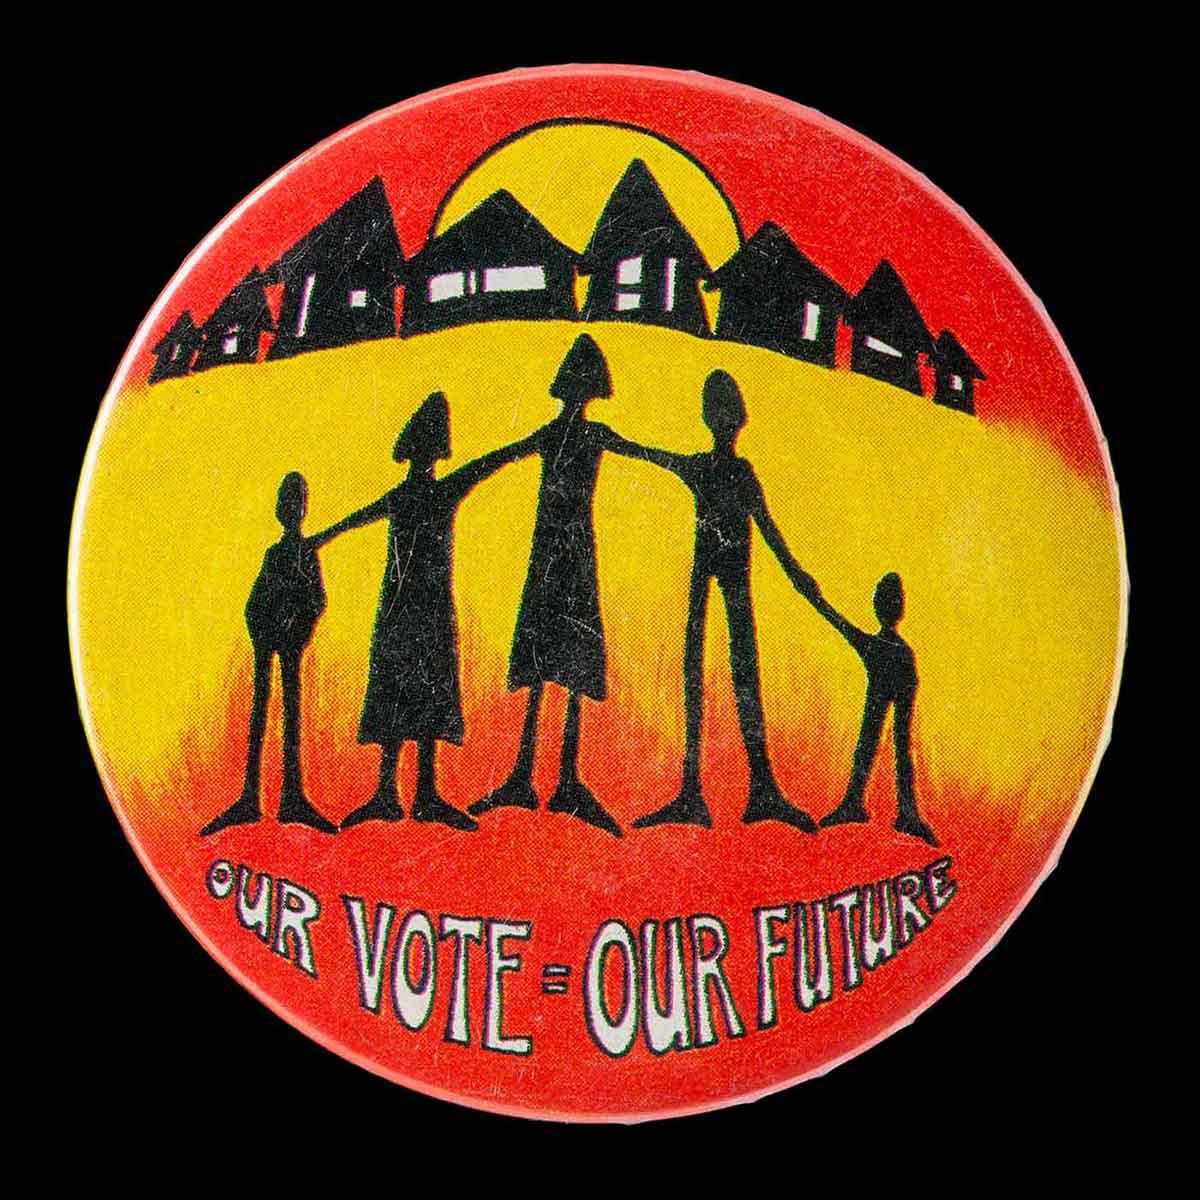 Circular badge with an illustration of silhouettes of human forms with a row of houses in the background and the text: OUR VOTE=OUR FUTURE. - click to view larger image